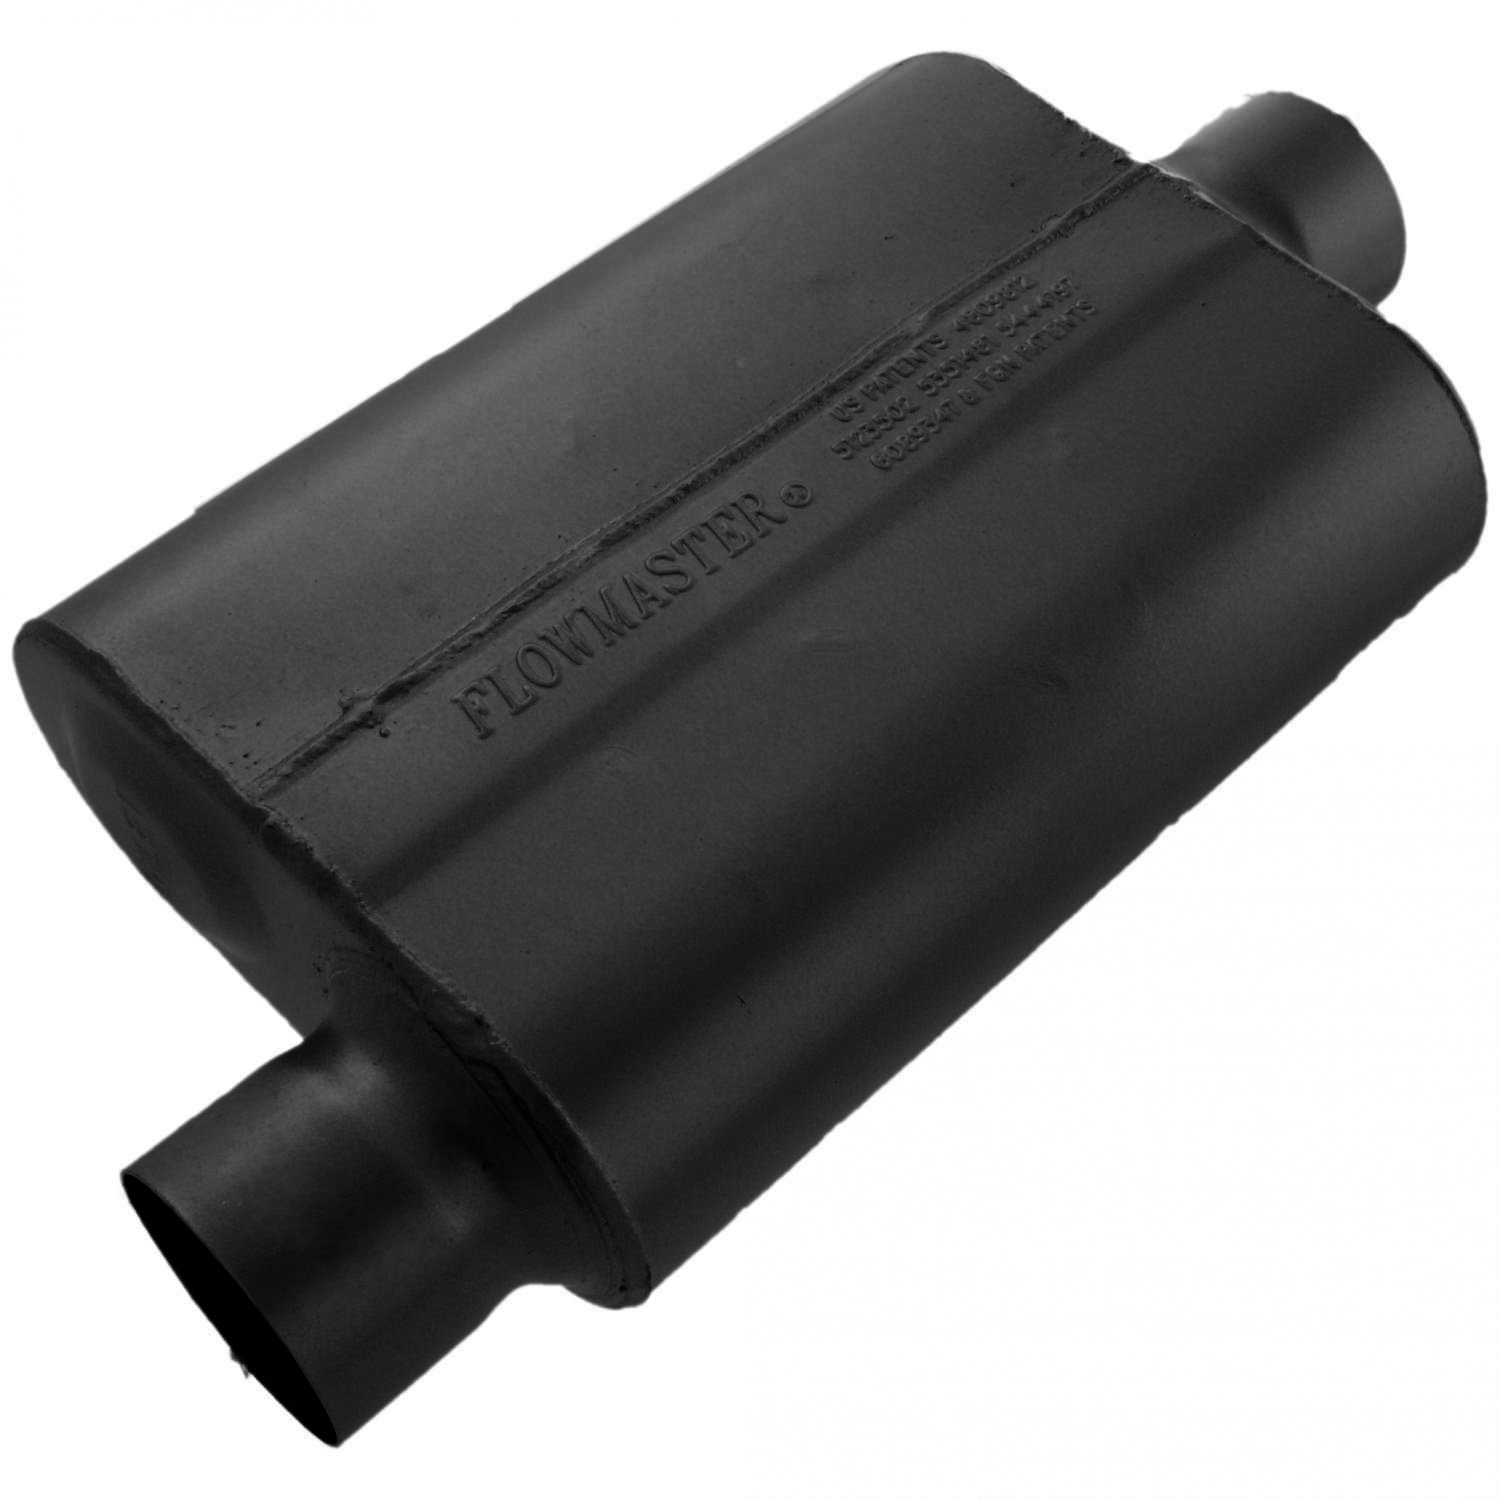 Flowmaster 43041 40 Series Muffler - 3.00 Offset IN / 3.00 Center OUT - Aggressive Sound